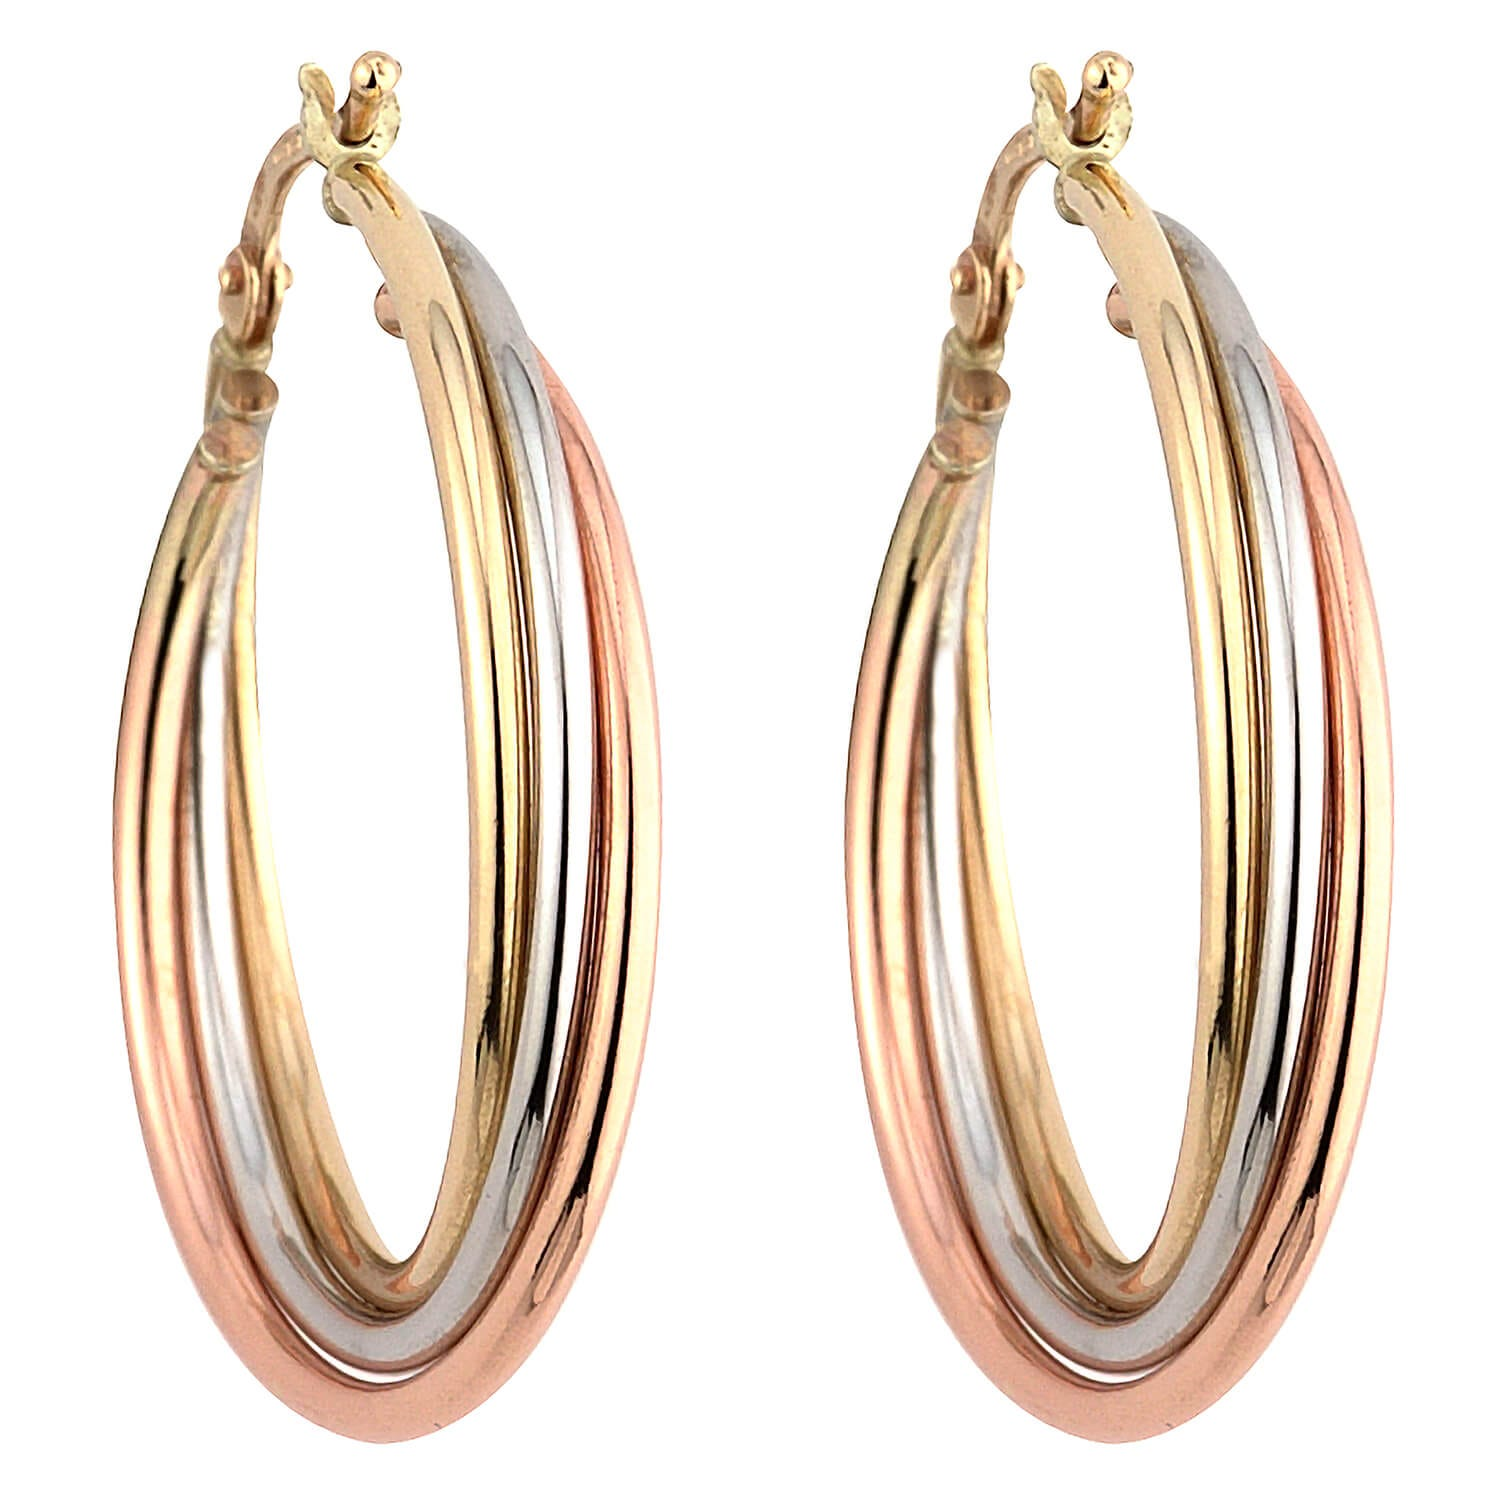 Details about  /Three Tone 9CT Gold Russian Wedding Hoop Earrings